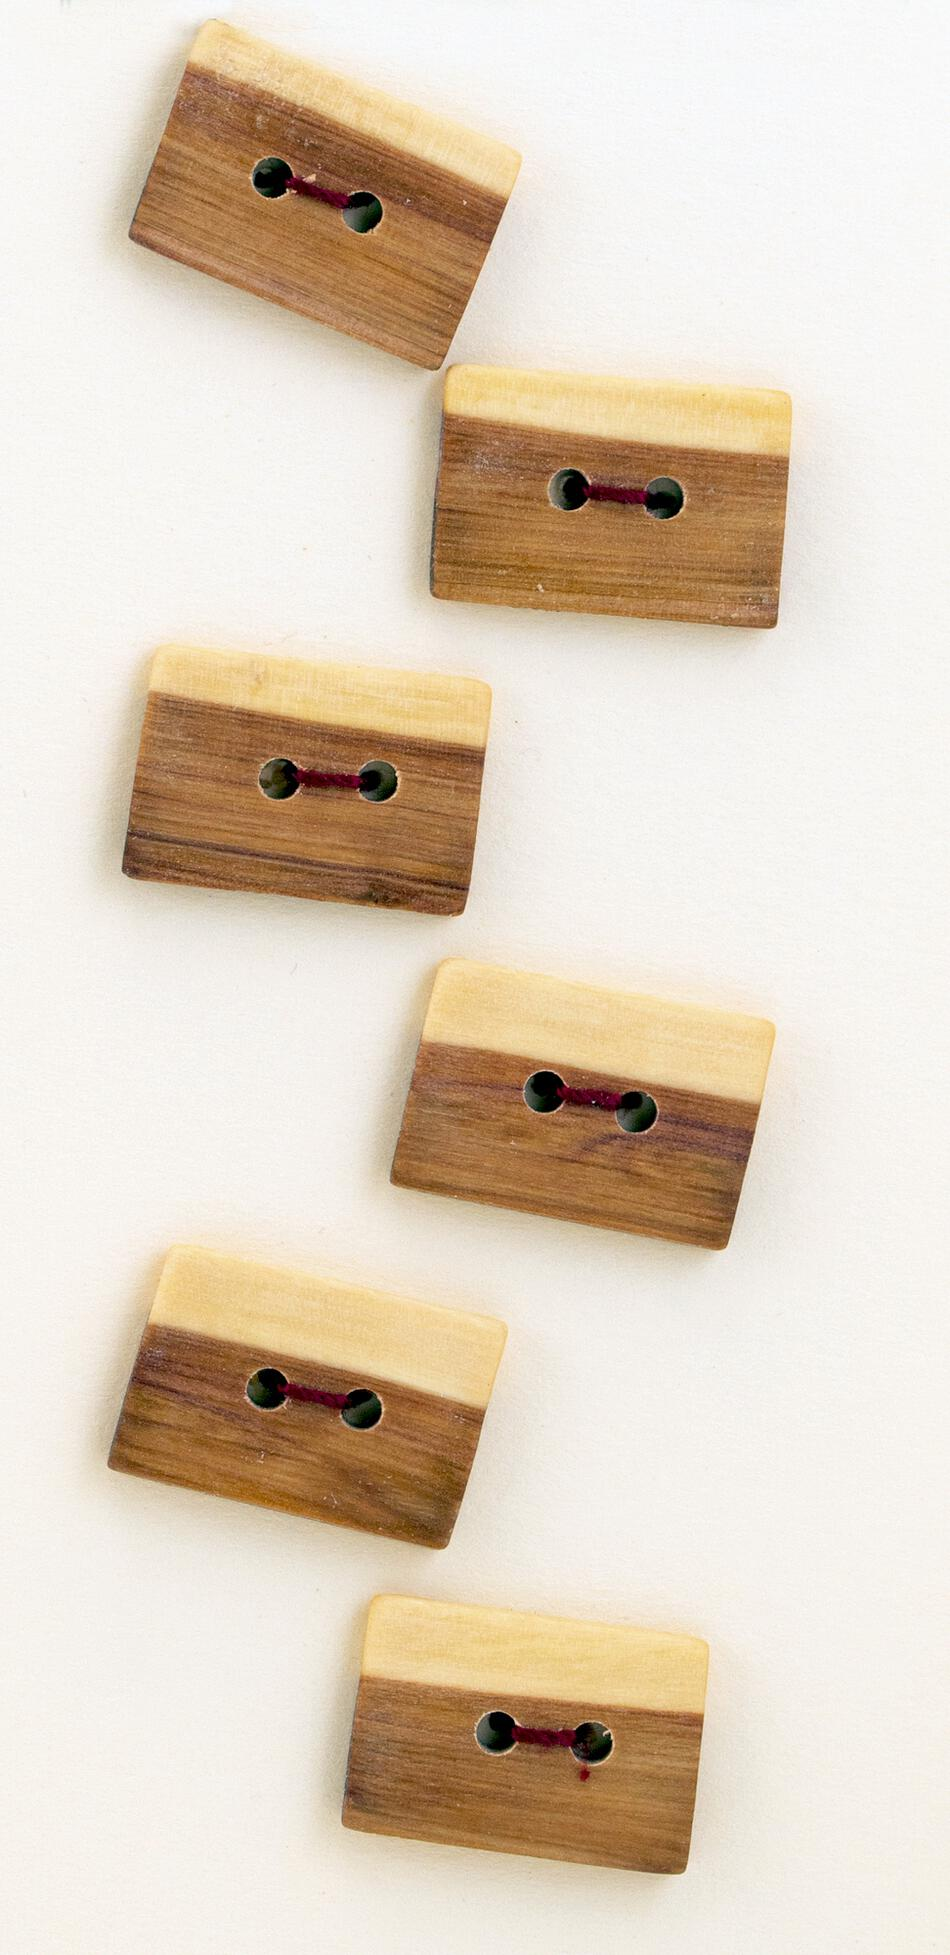 MultiCraft Equipment Six Small Square or Oblong Buttons  Mixed Wood